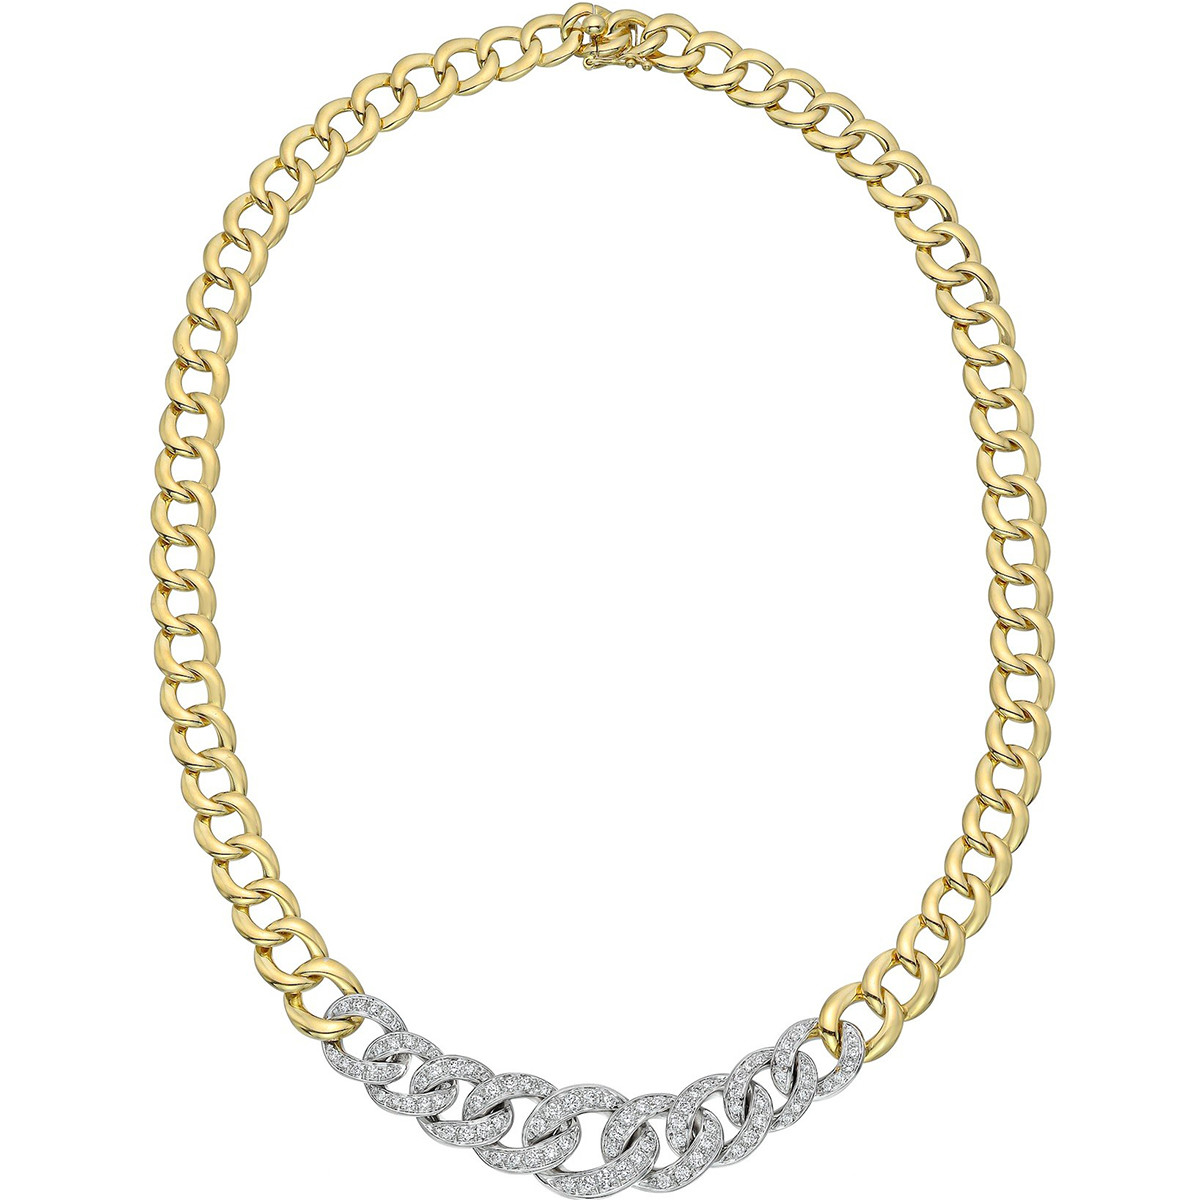 18k Gold & Diamond Graduated Curb-Link Necklace